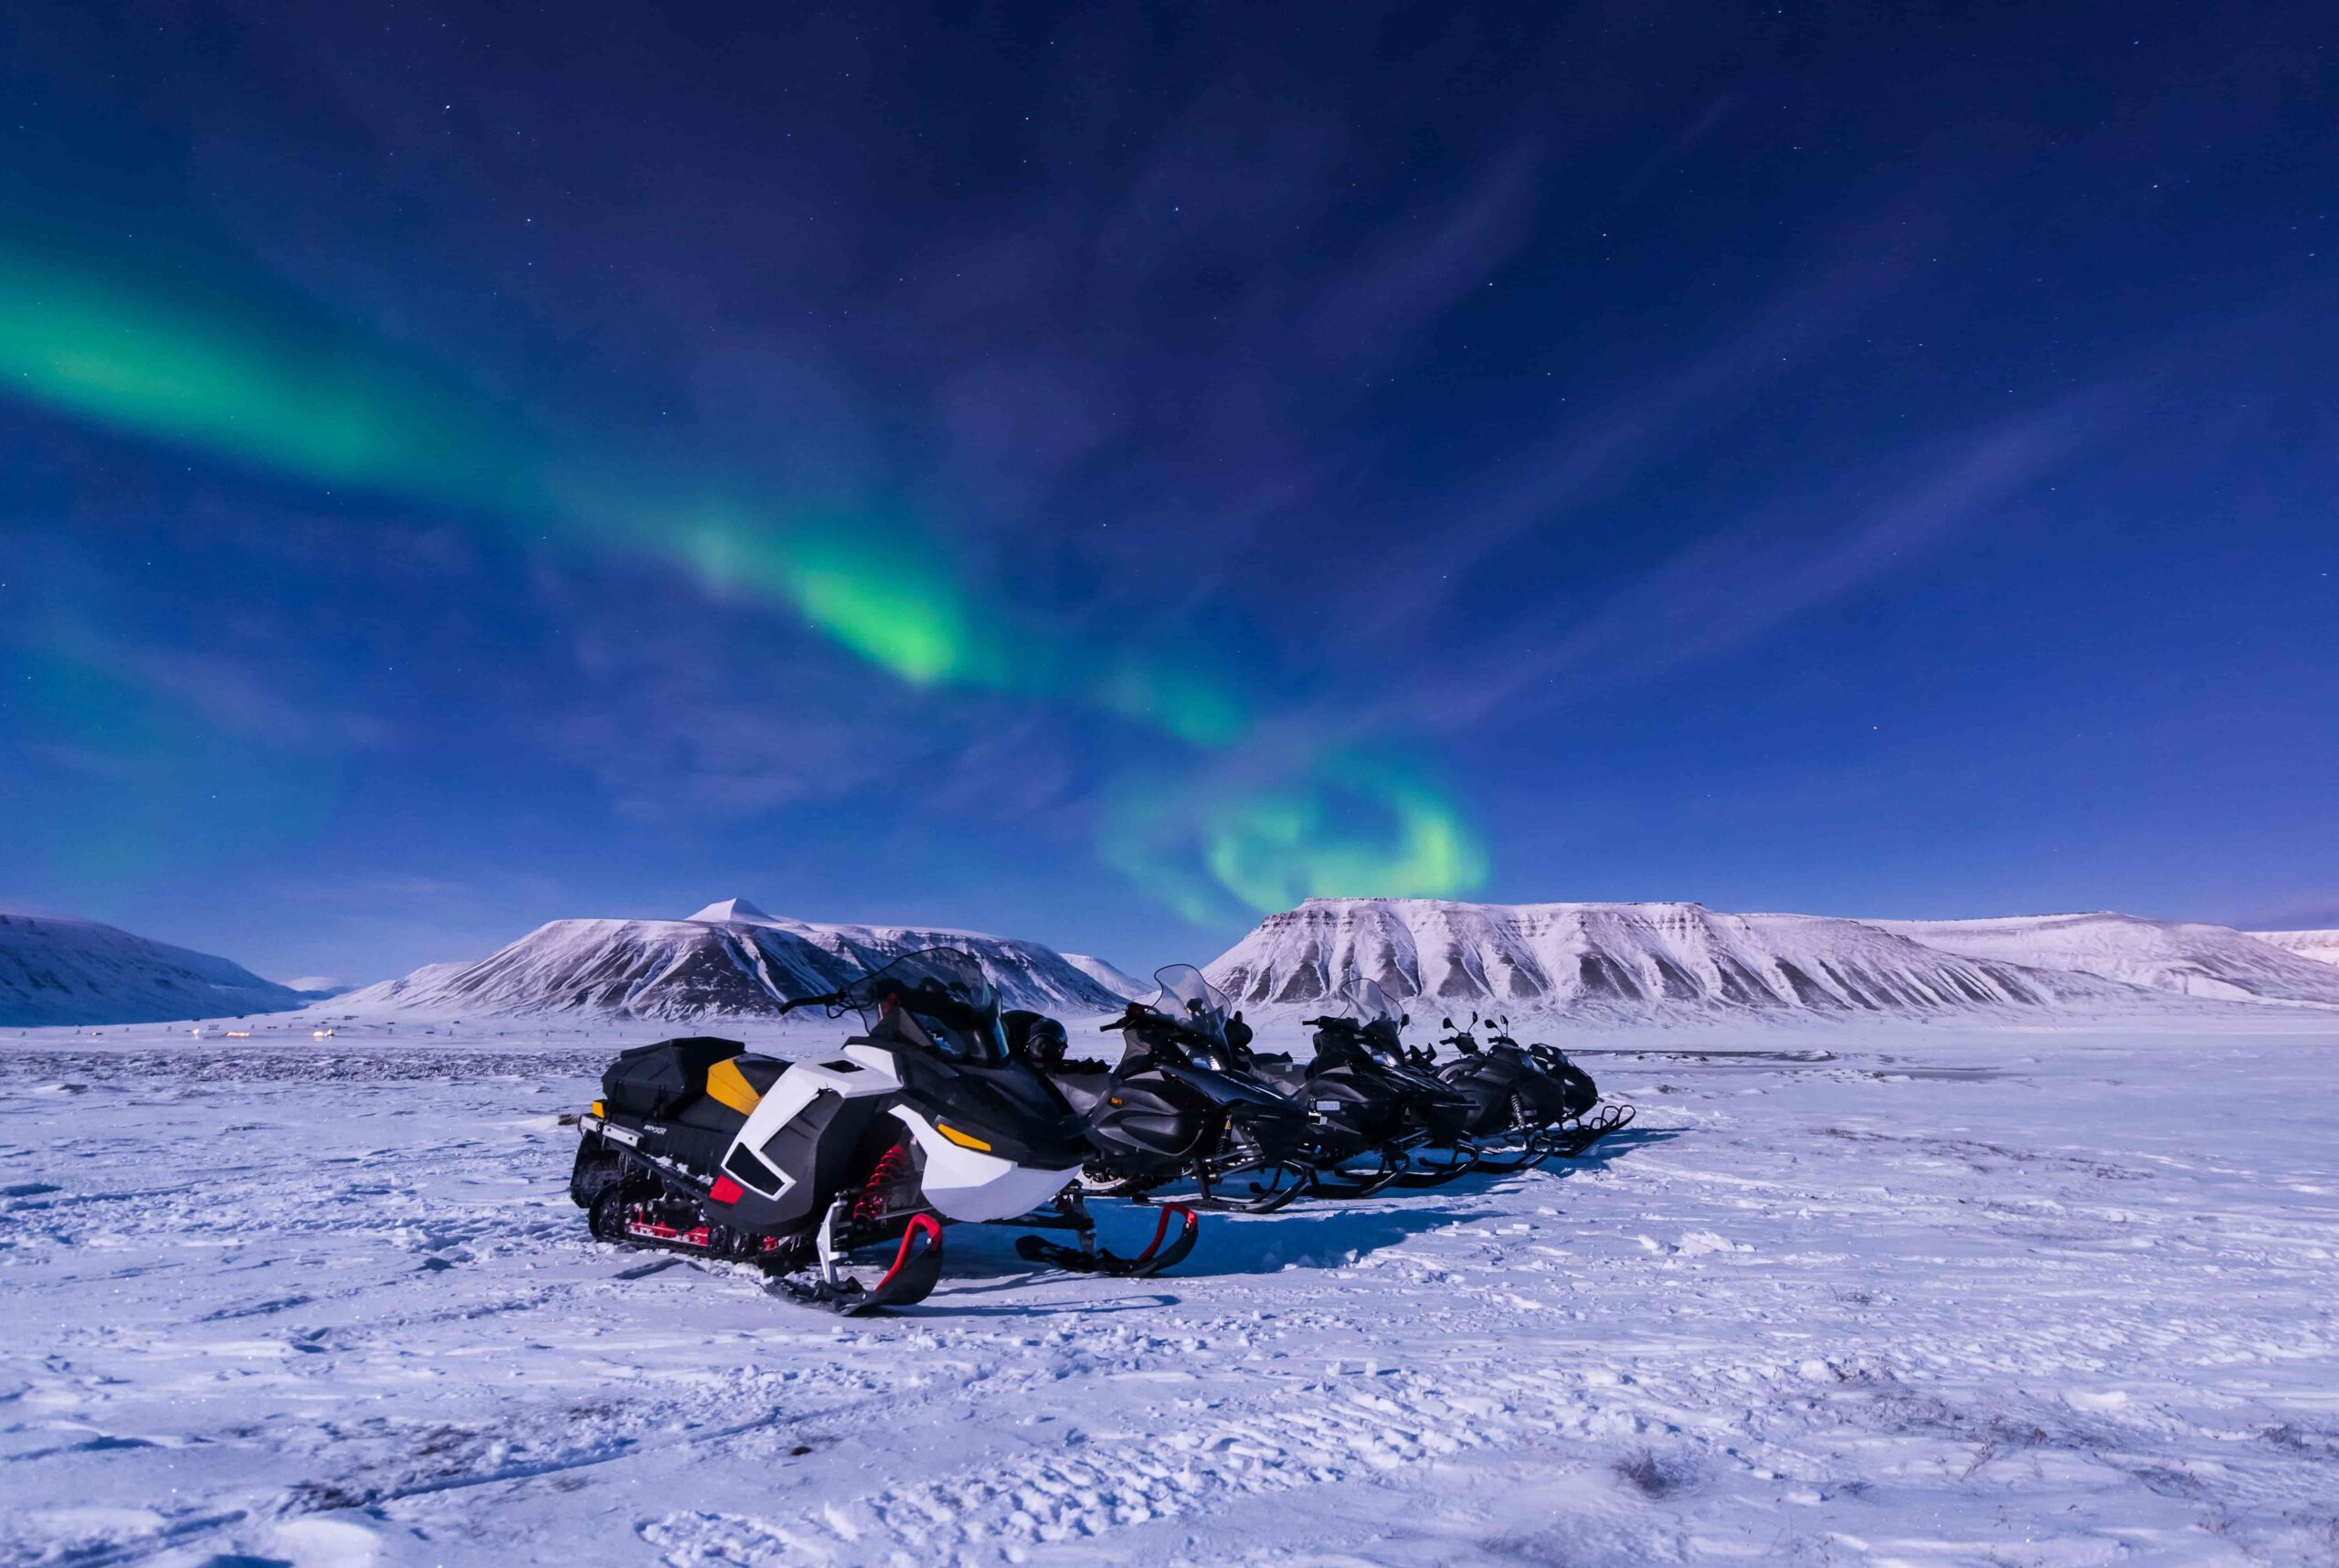 northern lights over snowmobiles in Iceland